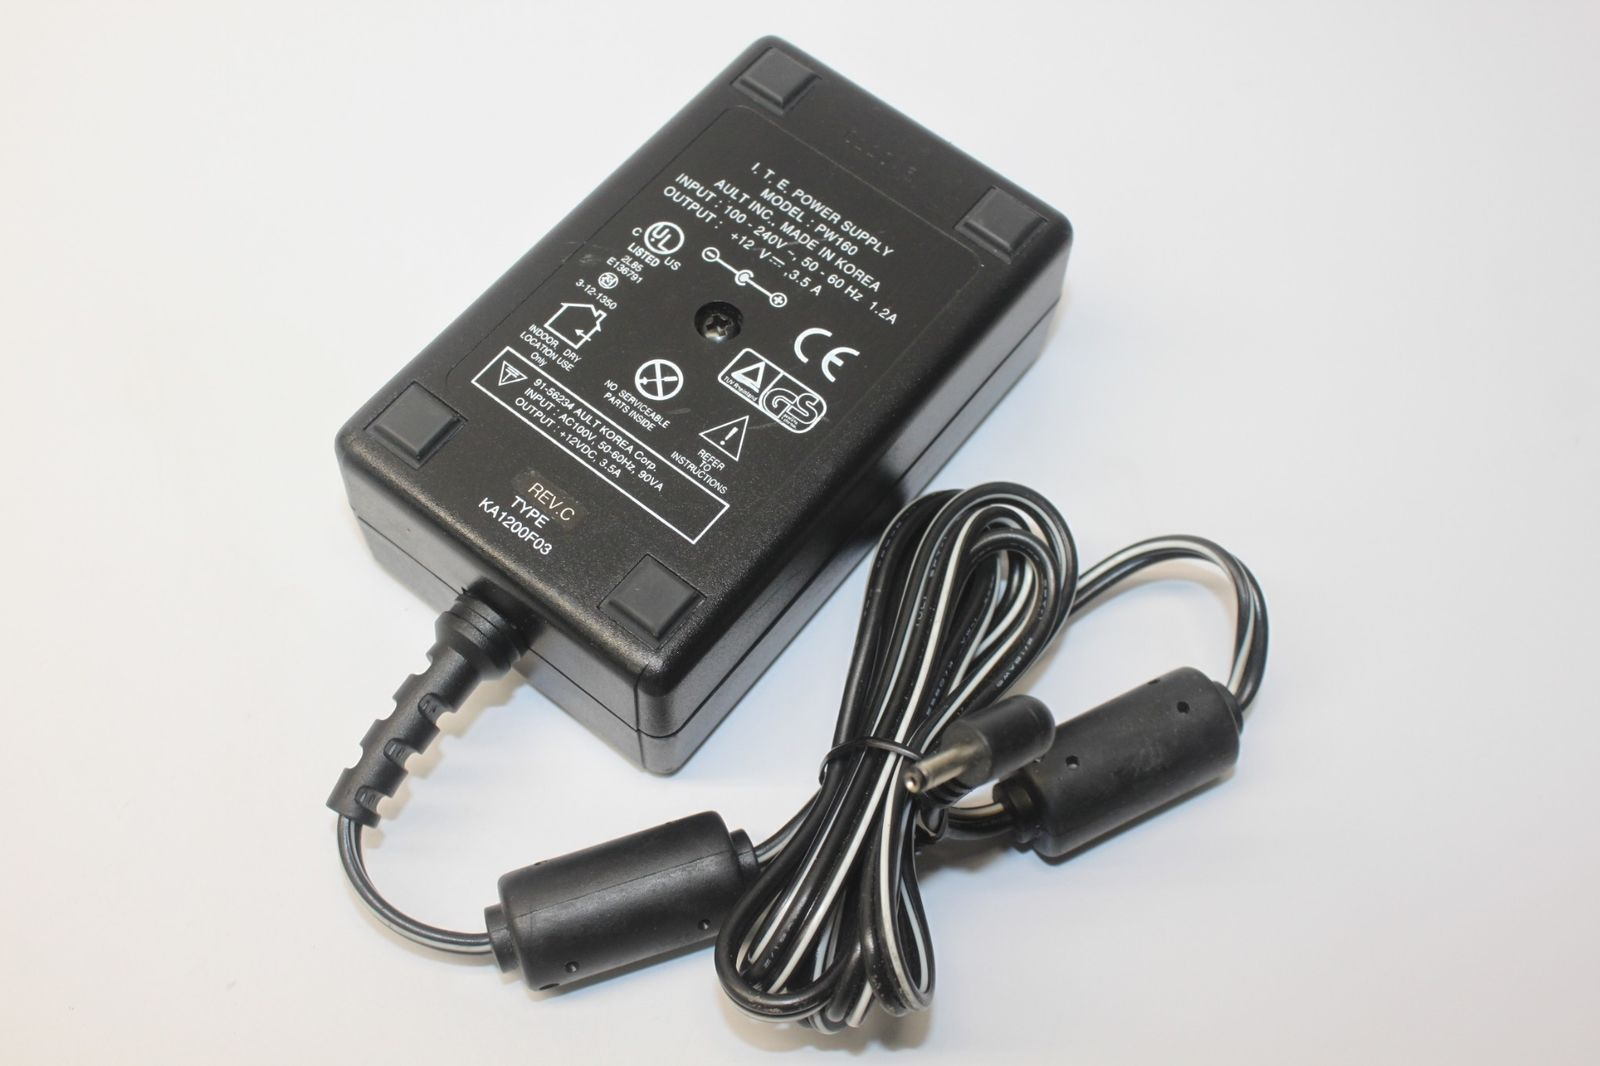 New Ault Pw160 Ka1200f03 Ac Adapter Dc 12v 3 5a Ite Power Supply Power Supply Adapter Ault